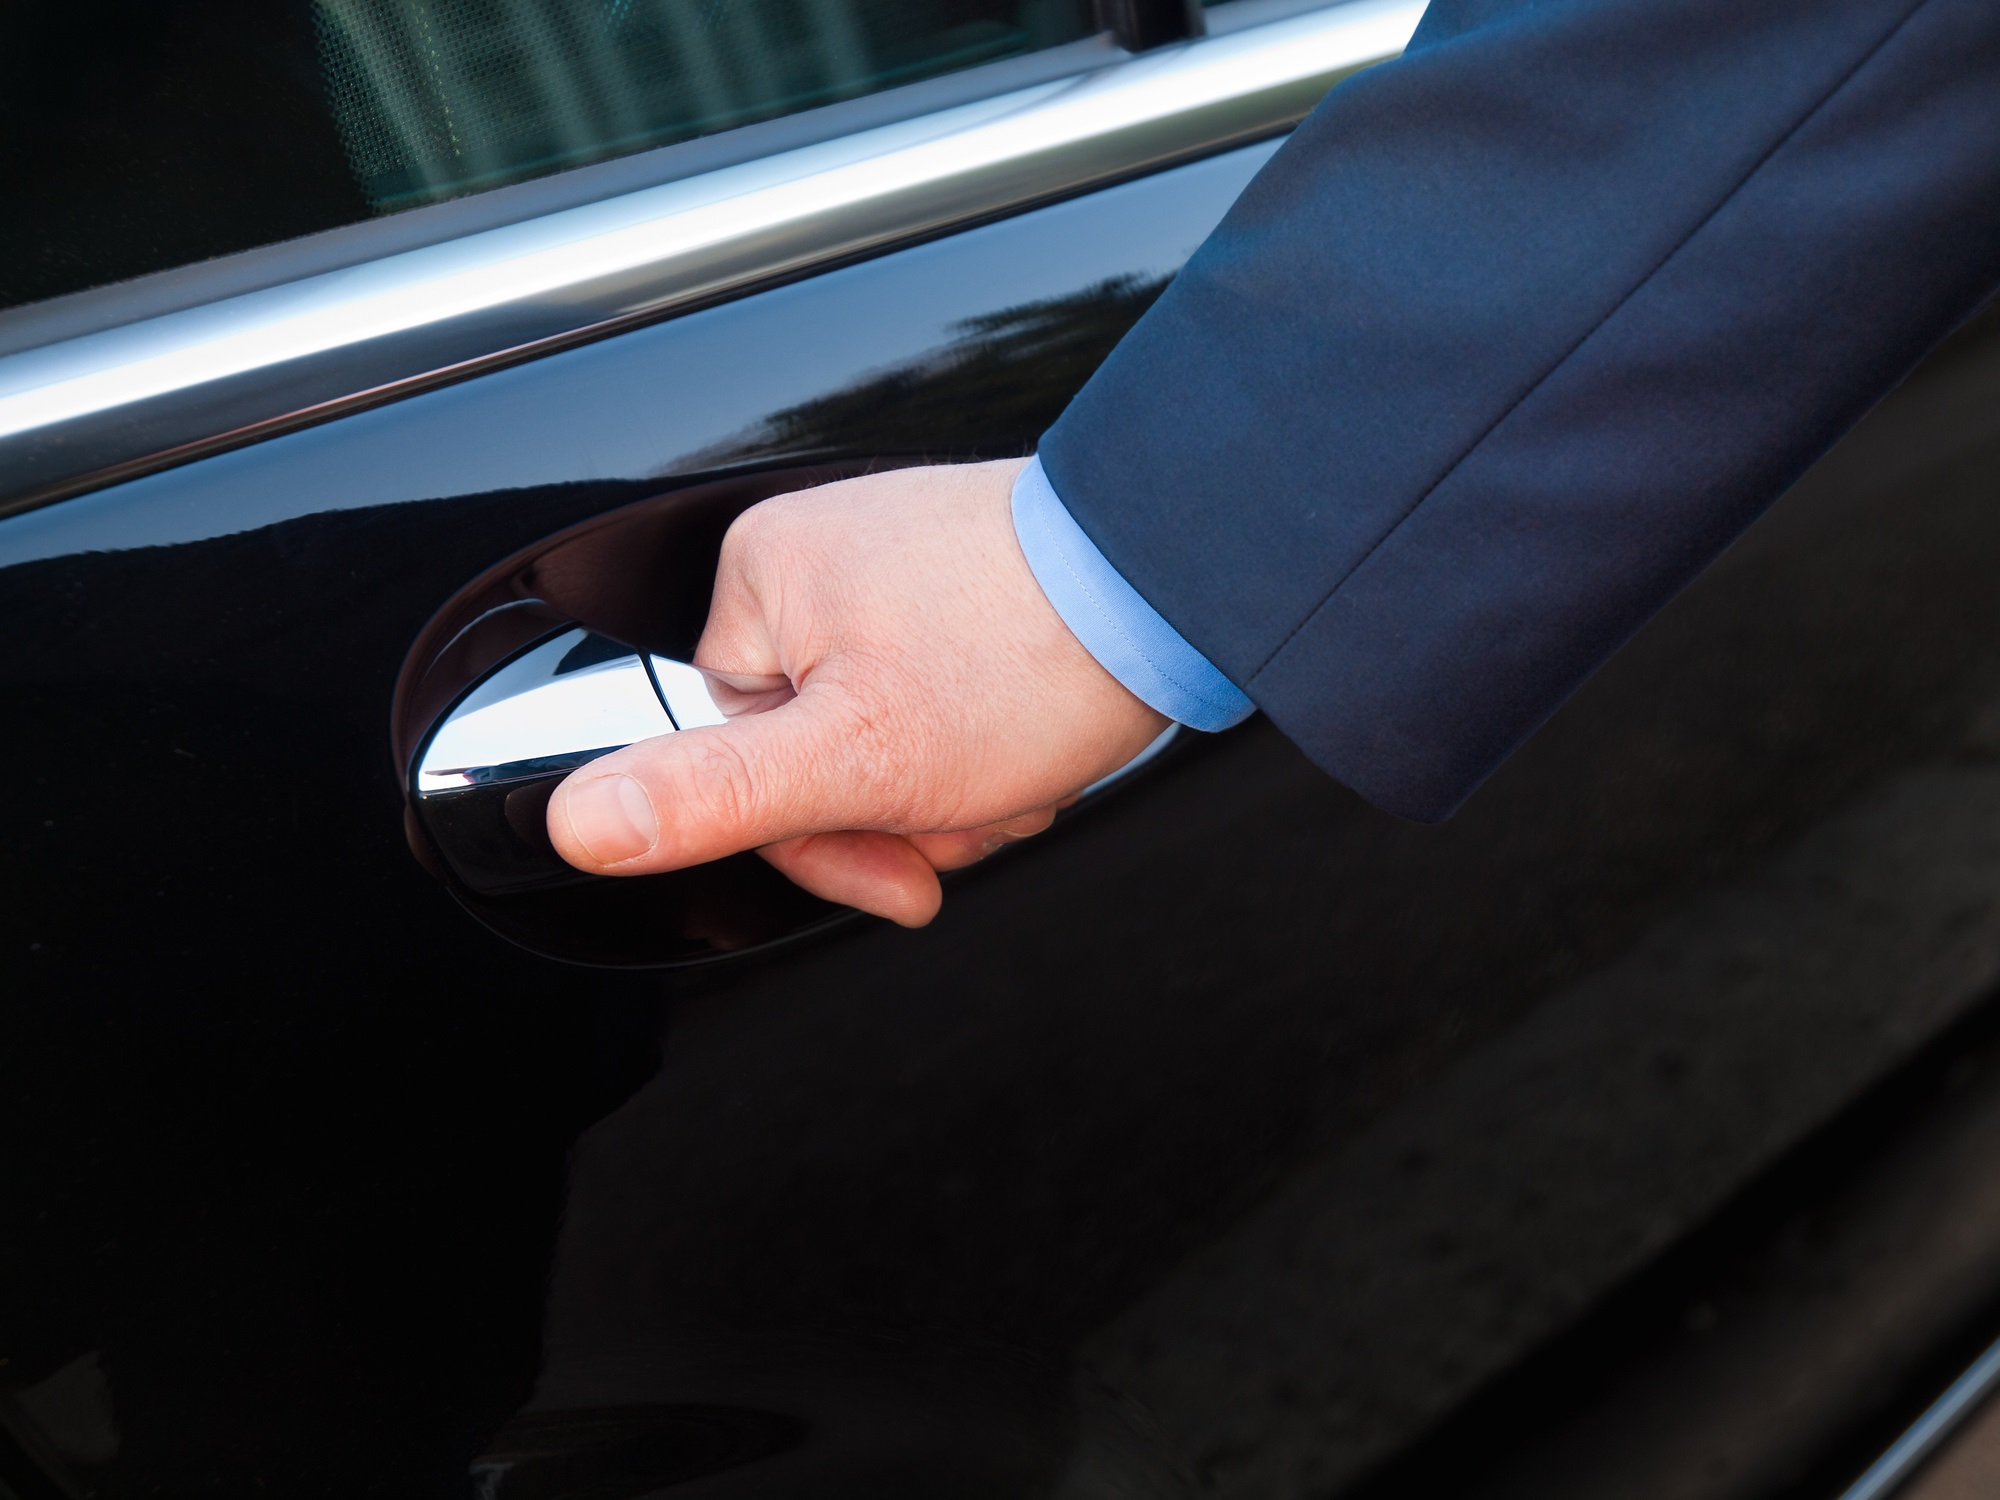 How Regular Disinfection and Deep Cleaning Services Are a Must for All Limo Fleets to Ensure Passenger Safety